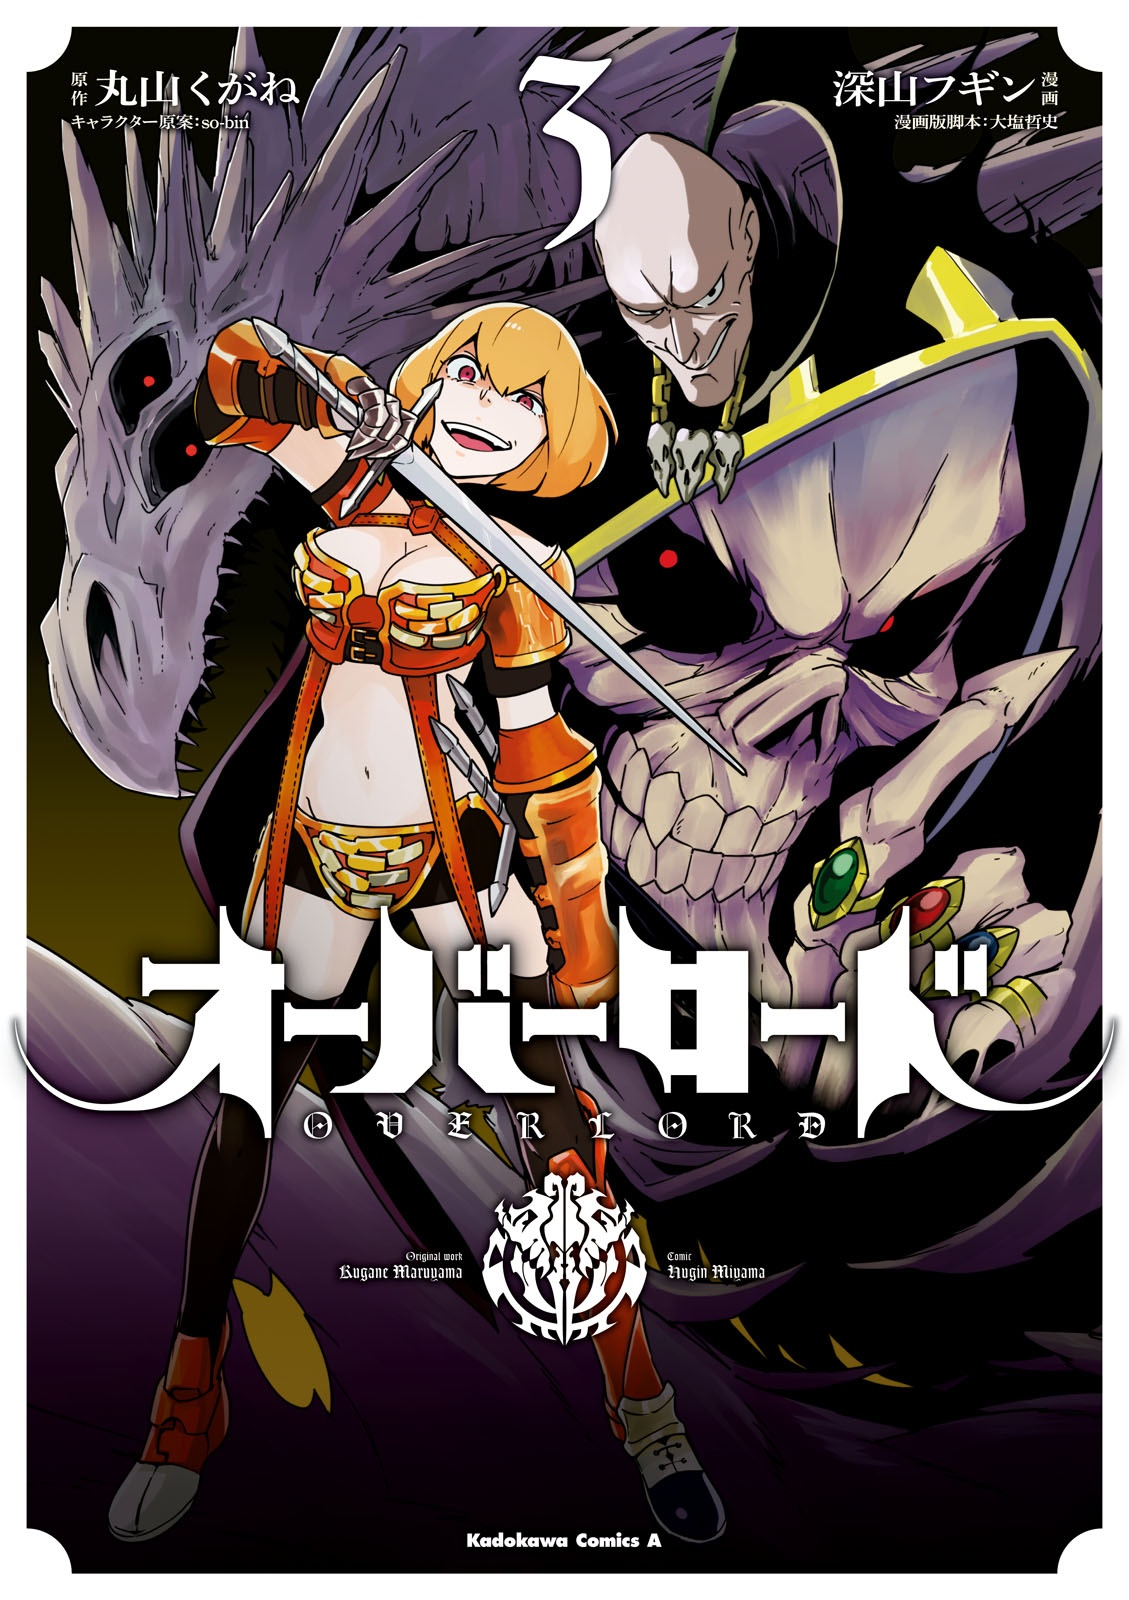 Overlord chapter 8